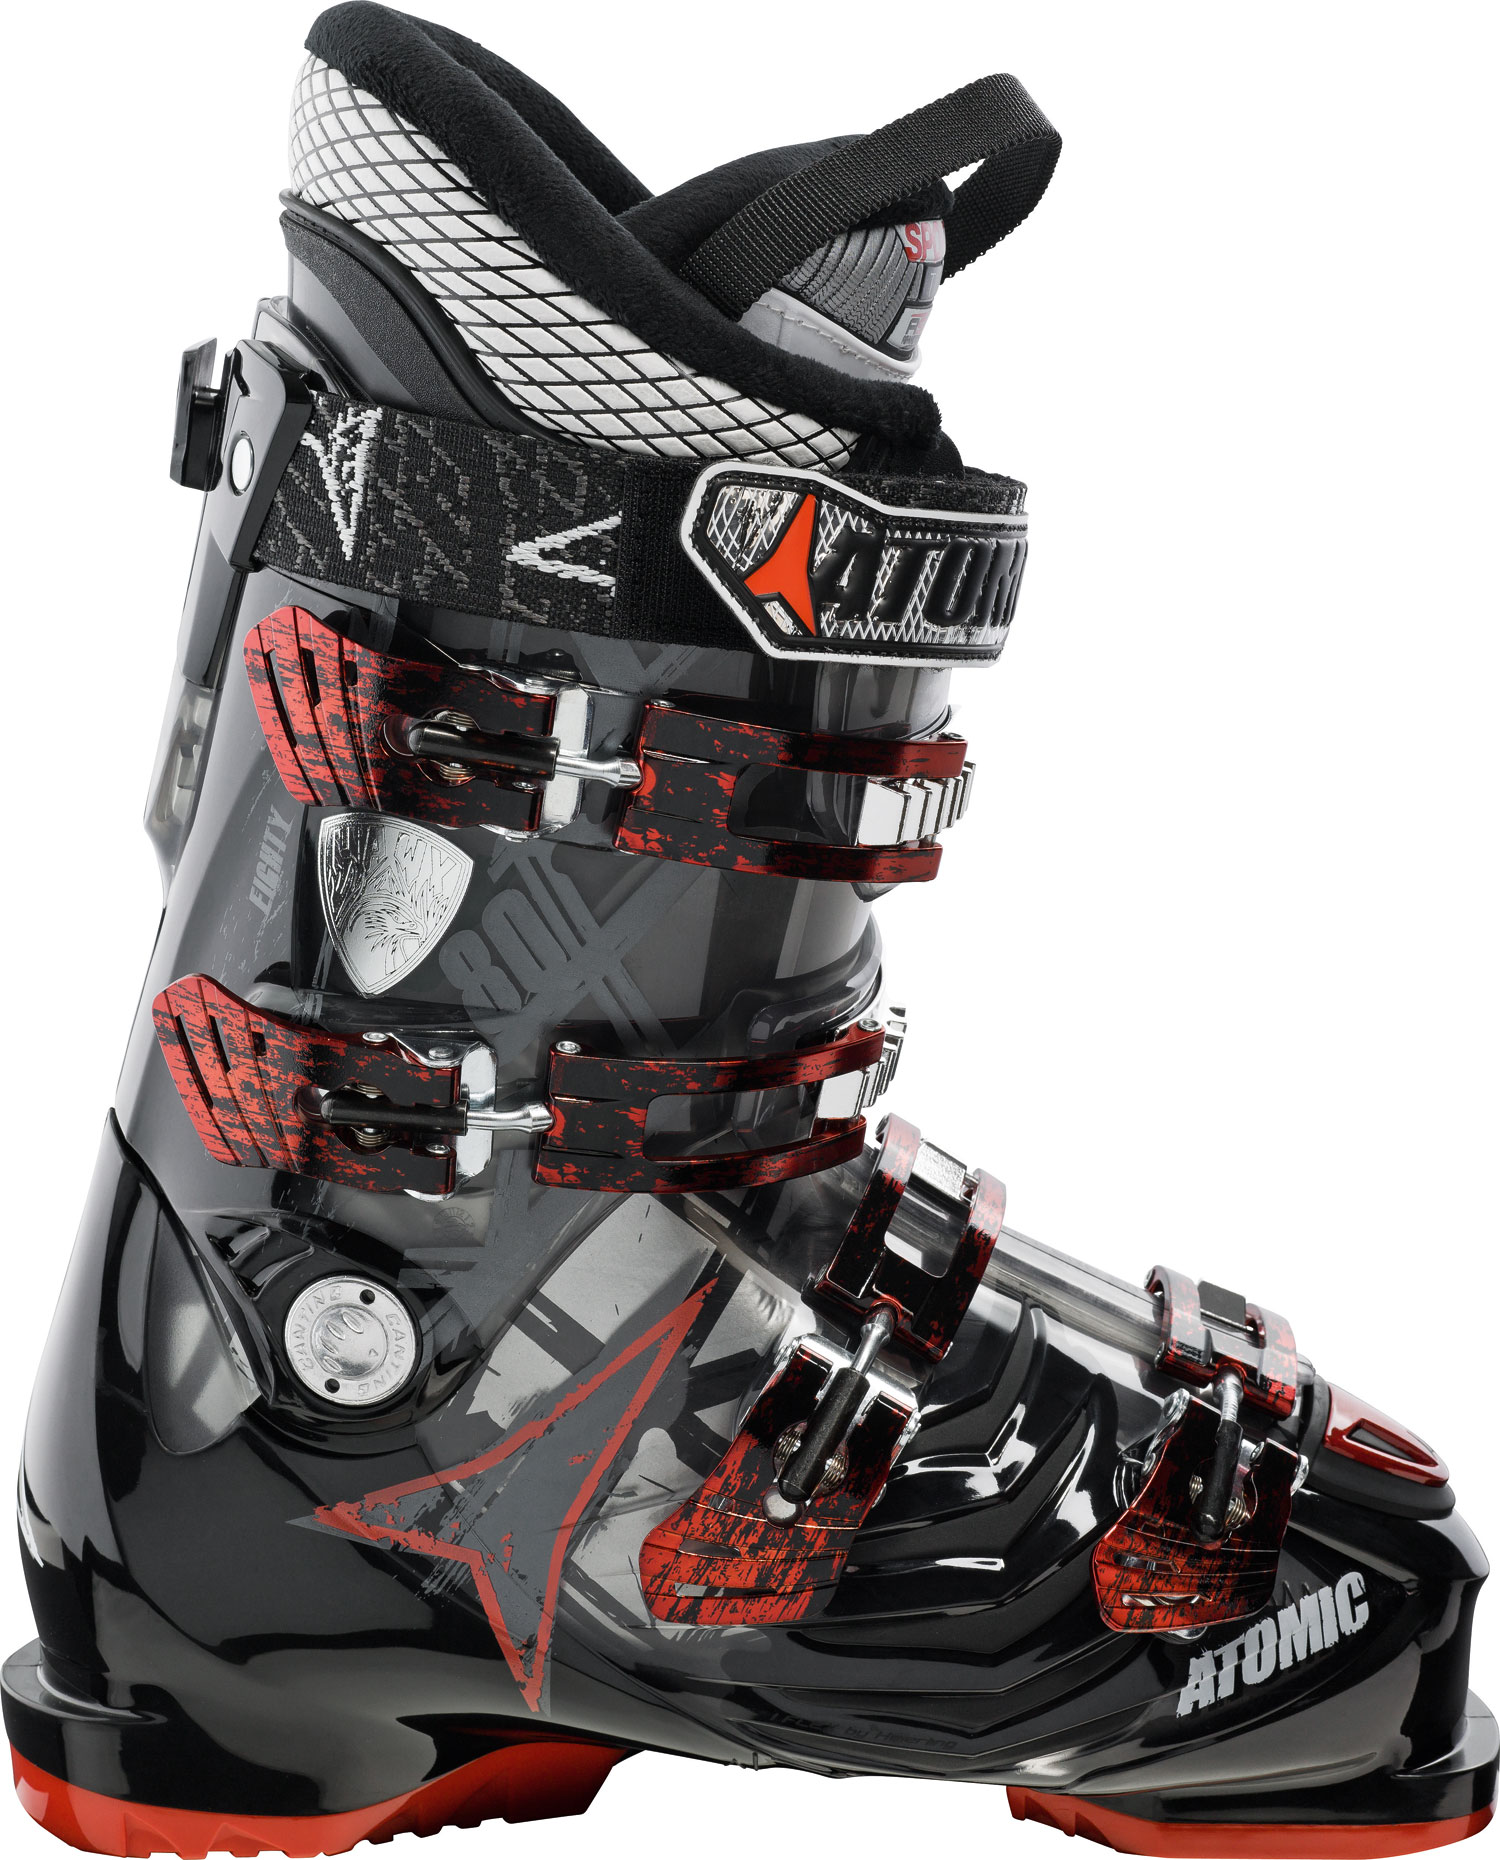 Ski Key Features of the Atomic Hawx 80 Ski Boots: 80 Flex Edge 7000 buckle 35mm strap ASY Sport T1 liner - $241.95